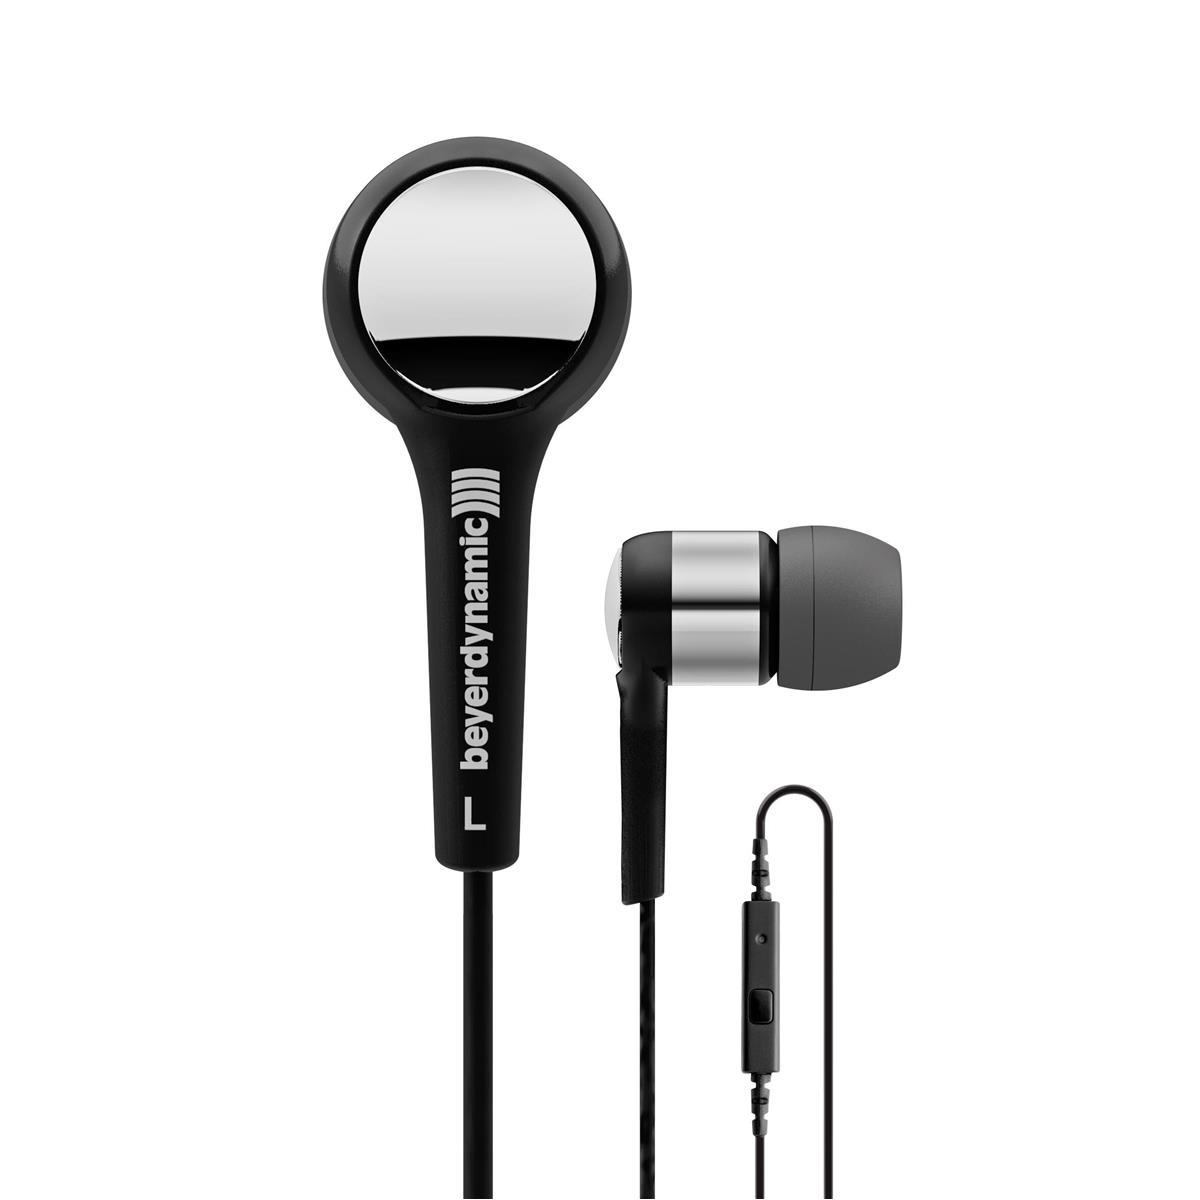 Beyerdynamic MMX 102 iE In-Ear Headphones with In-Line Microphone (Black)